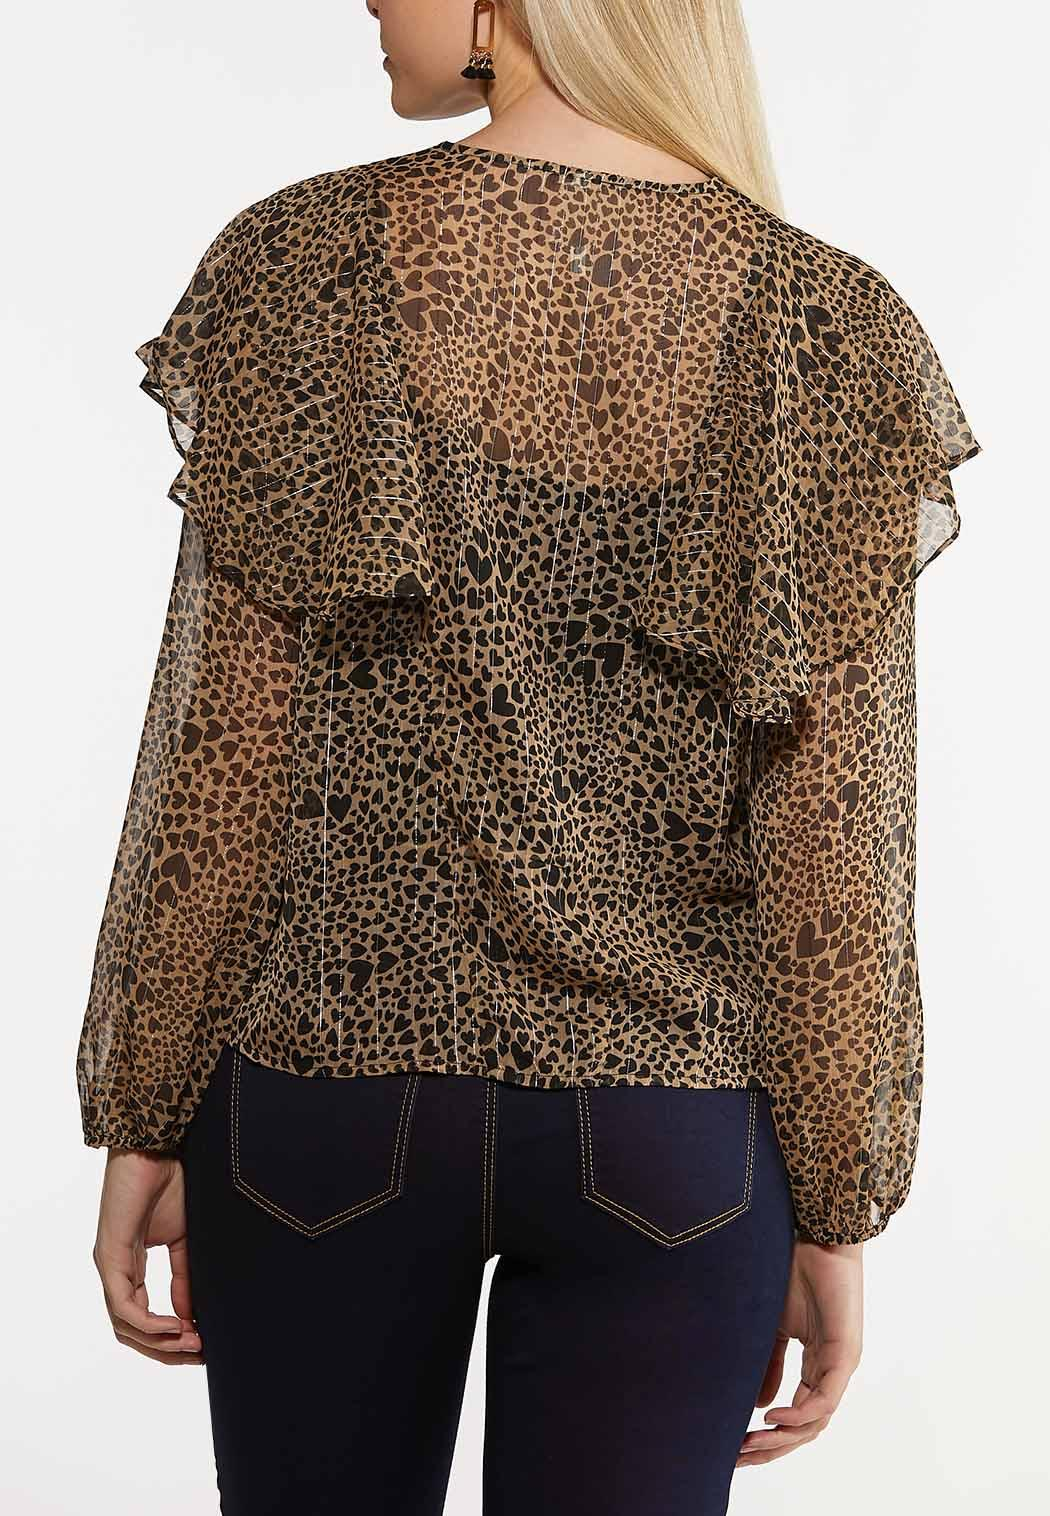 Wild At Heart Top (Item #44225300)